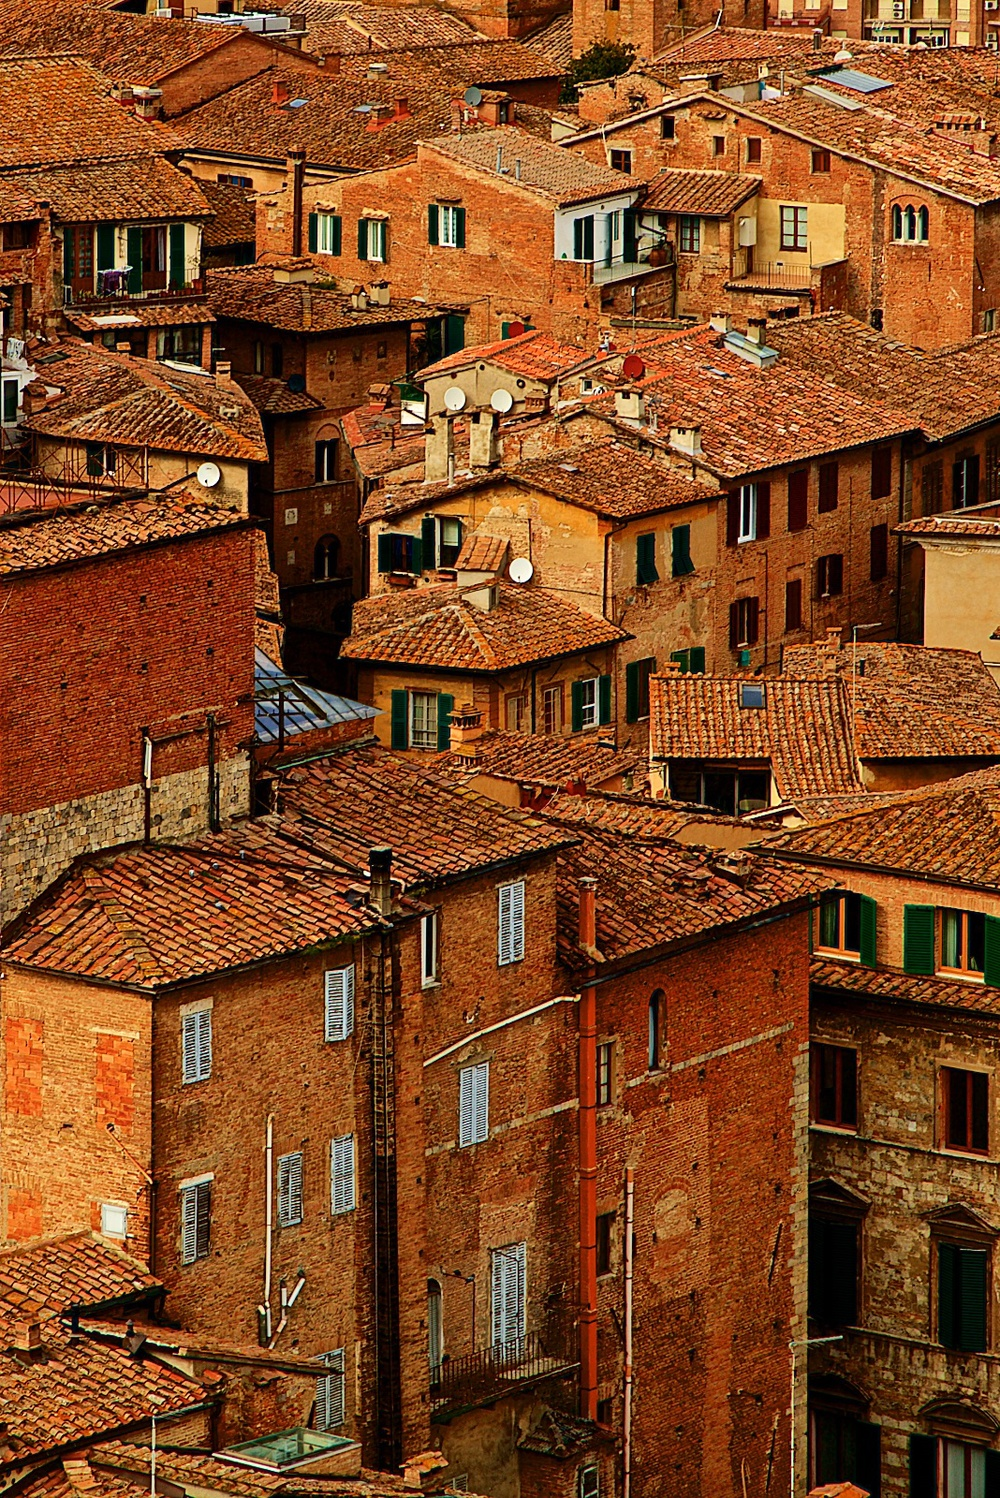 roofs-of-siena-toscana-tuscany-denis-bosnic-photography- 9.jpg